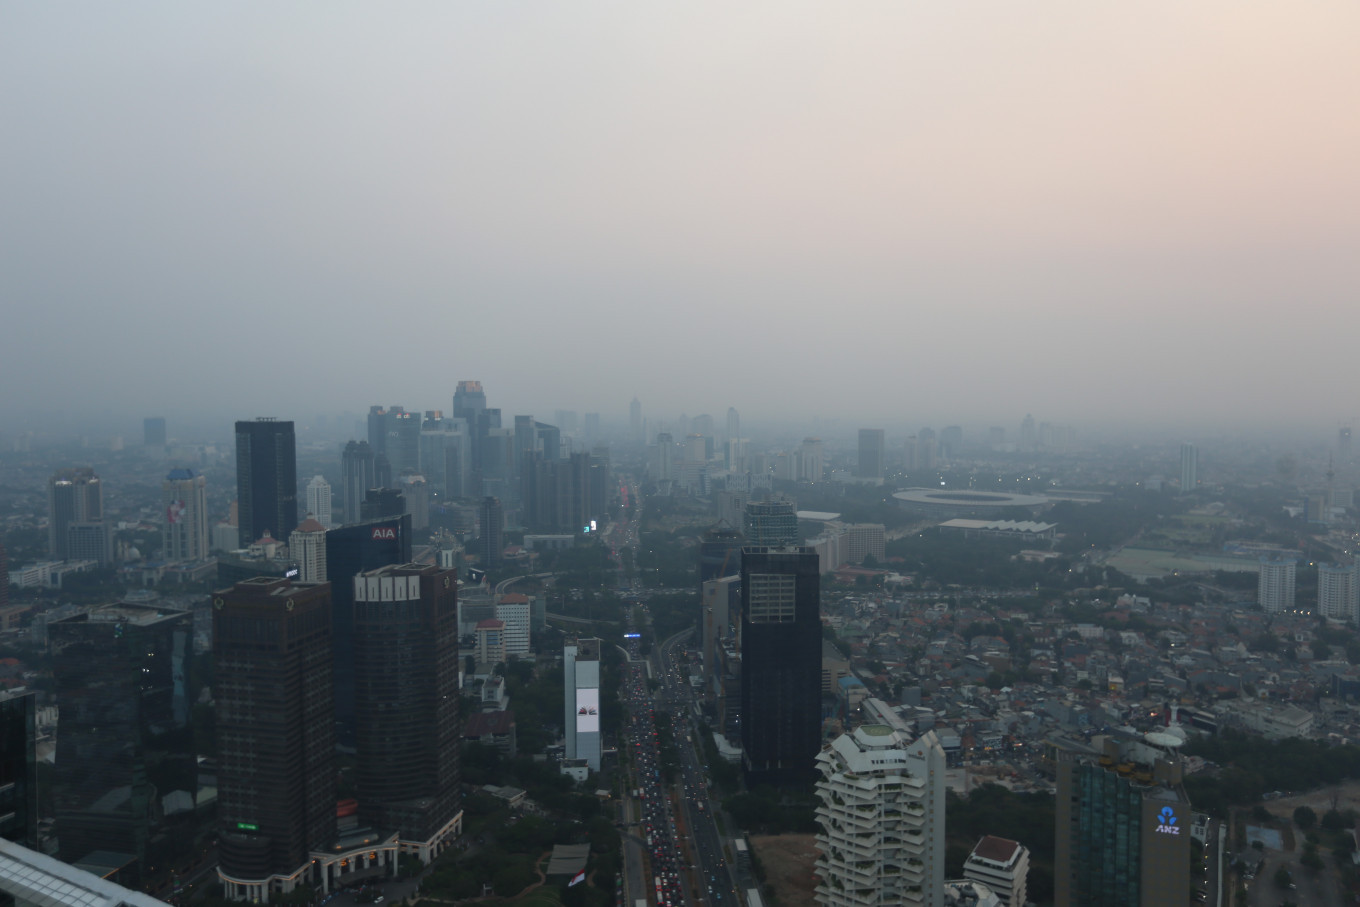 Air pollution can kill, even when it meets air quality guidelines